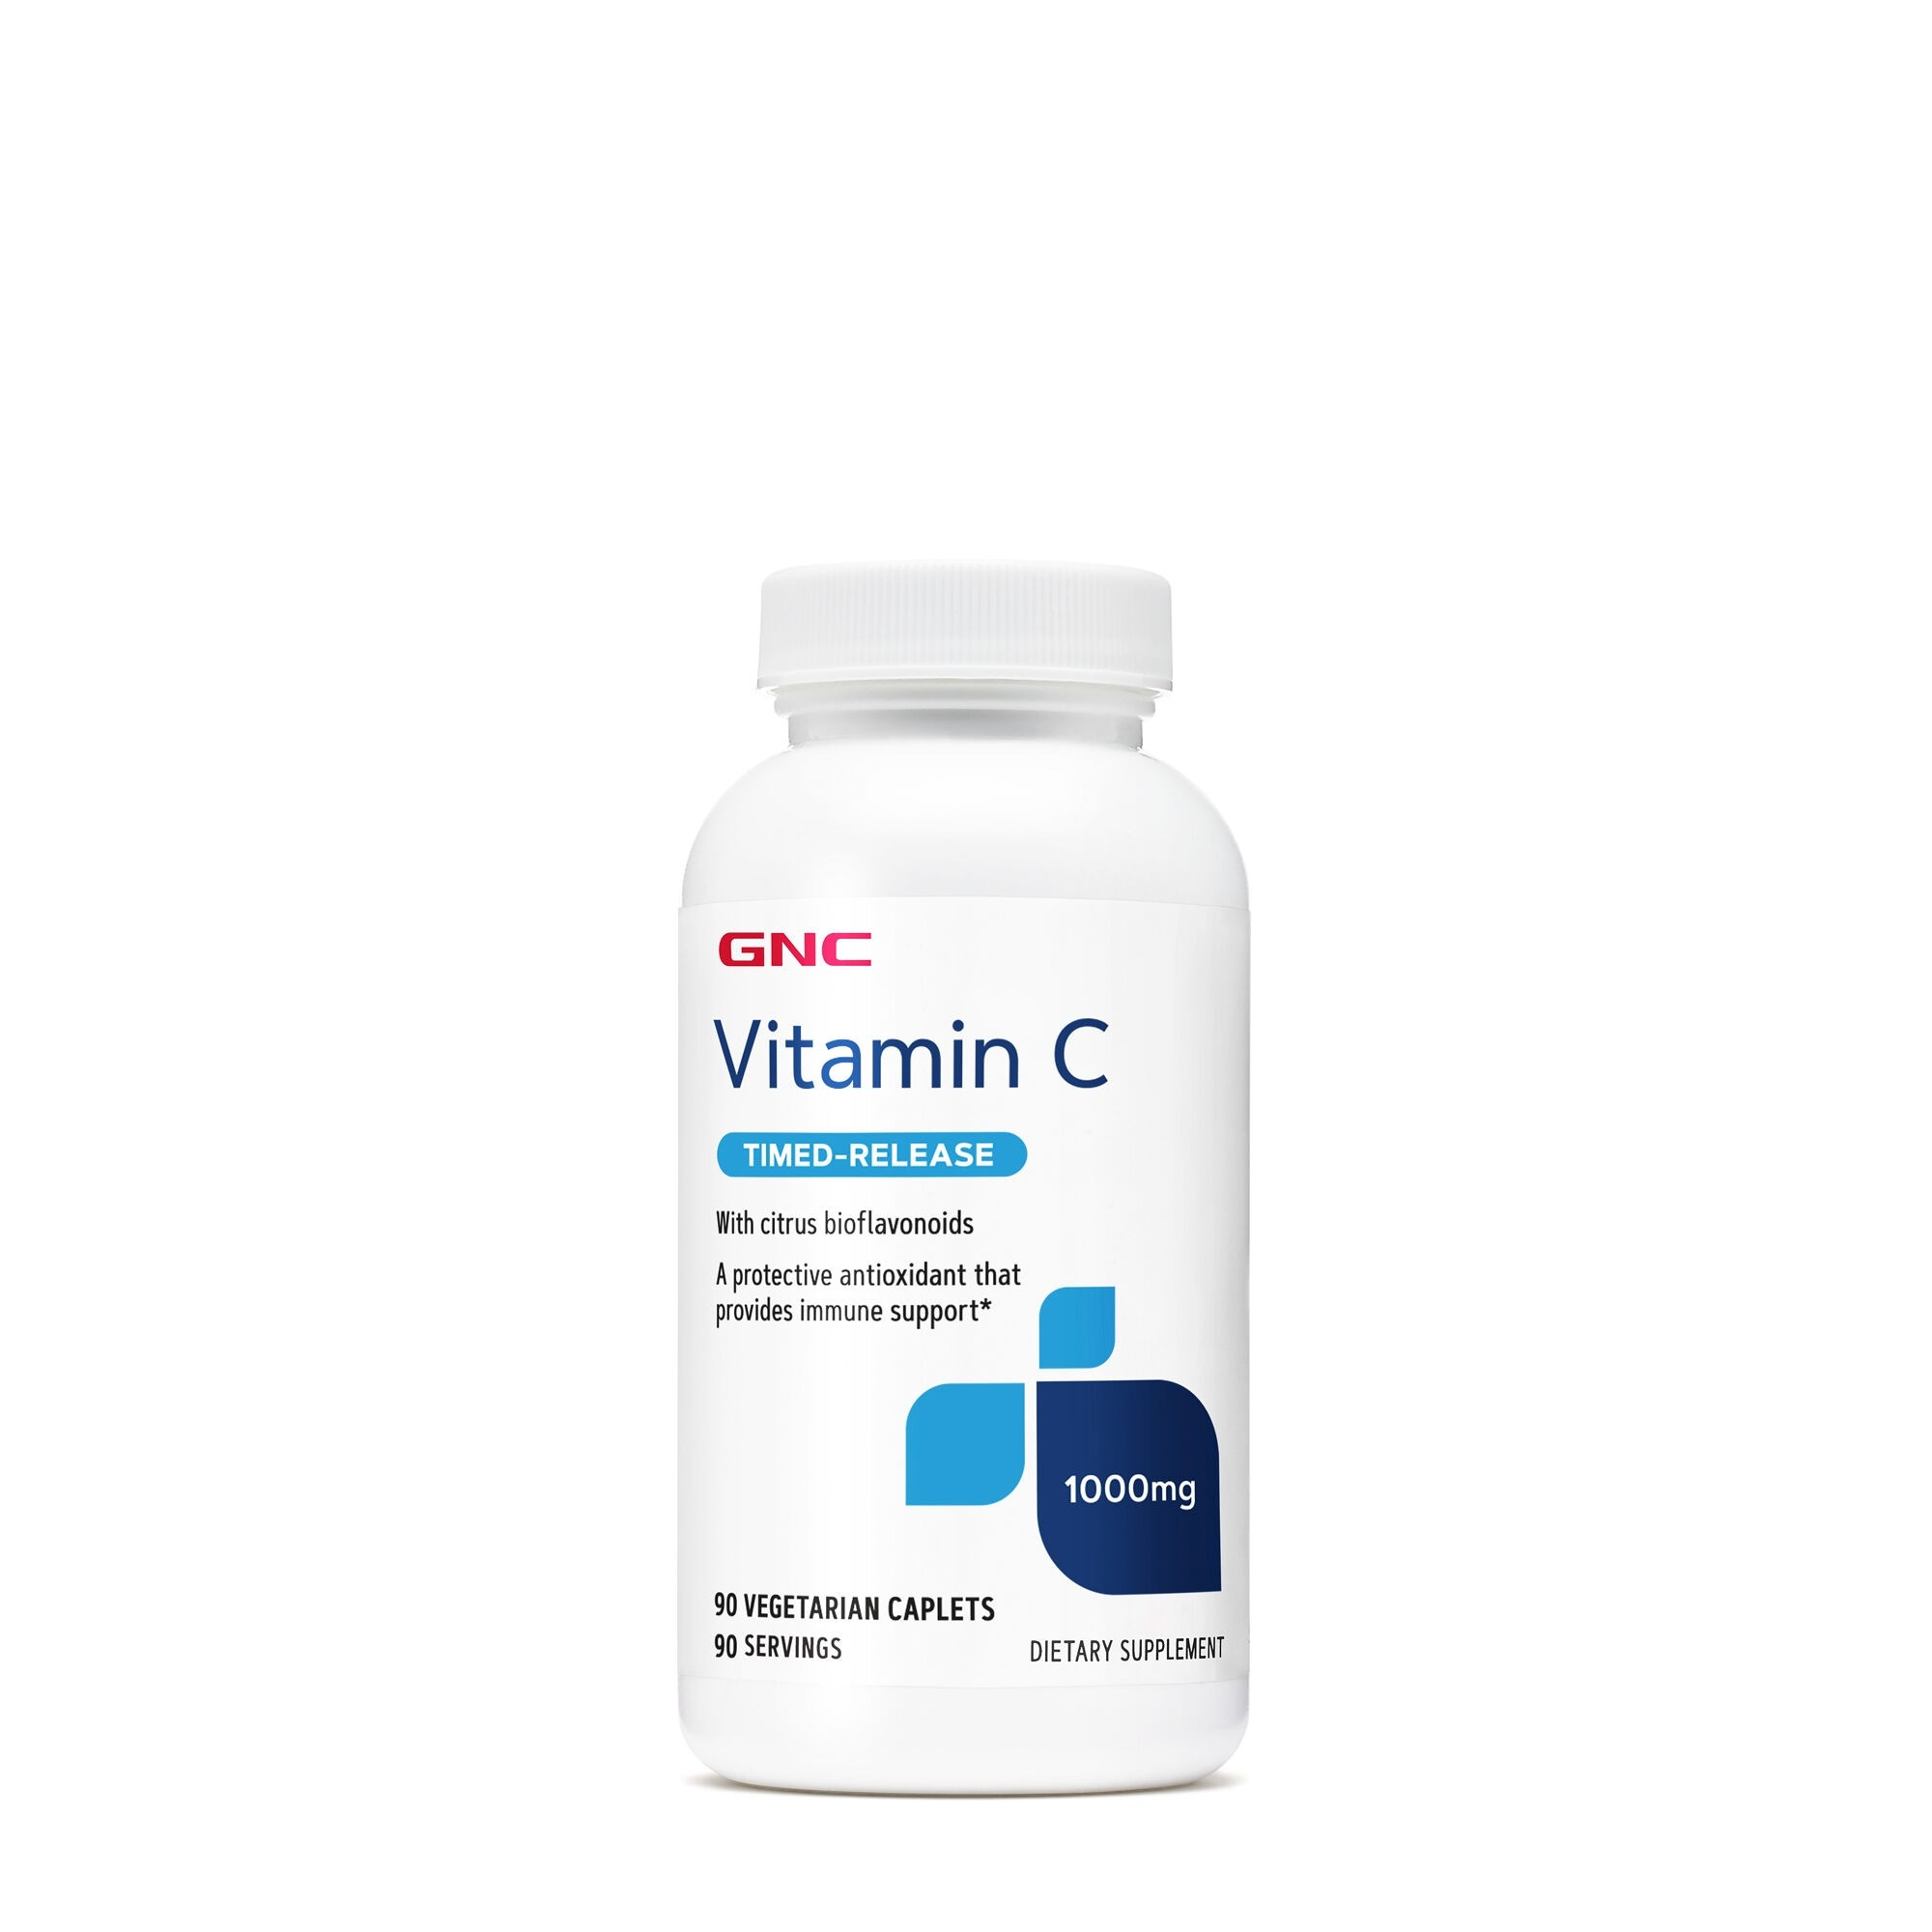 GNC Vitamina C 1000 Mg, 90 tb